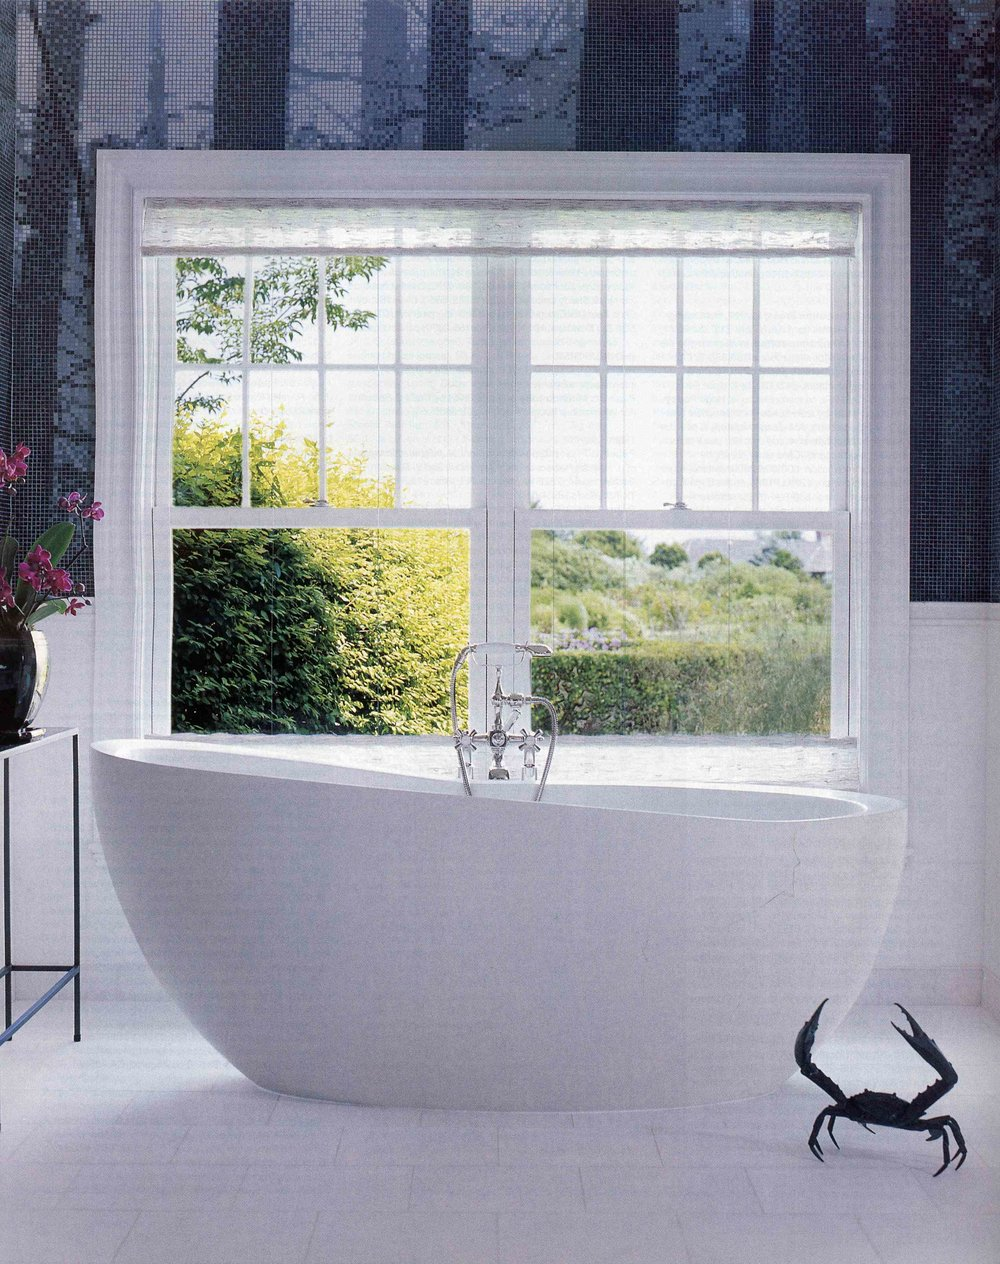 Elle Decor_Jul-Aug 07_ Menin Hamptons_Full Article_Page_7.jpg